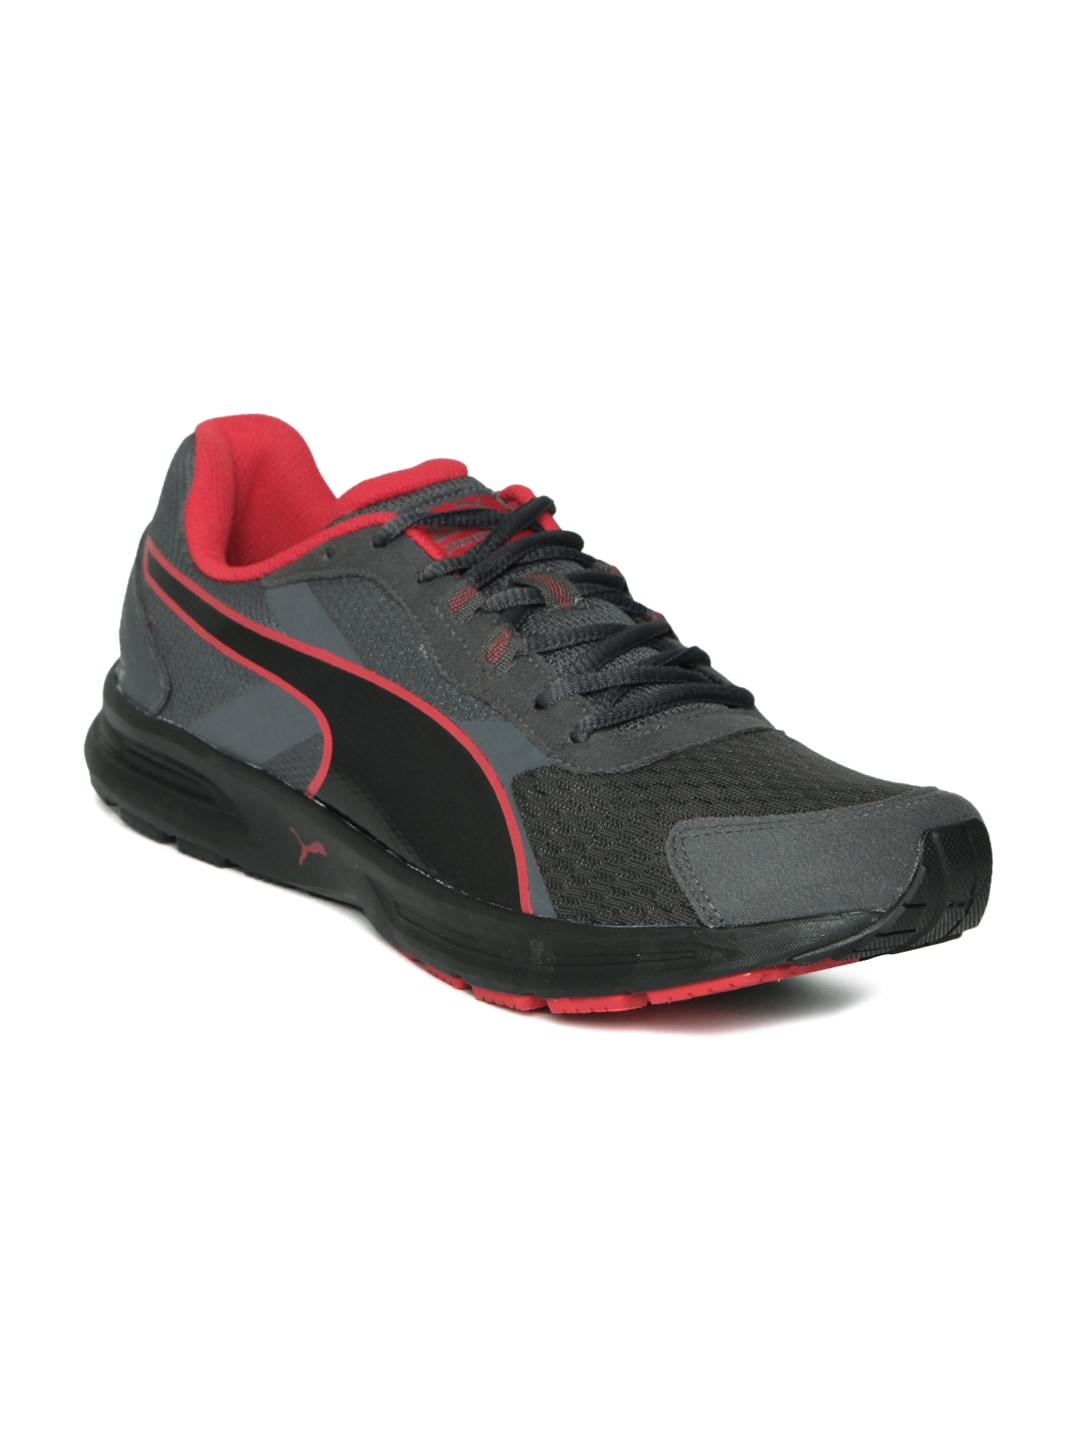 092fa874bc90 Puma 18923302 Men Charcoal Grey Expedite Idp Running Shoes ...